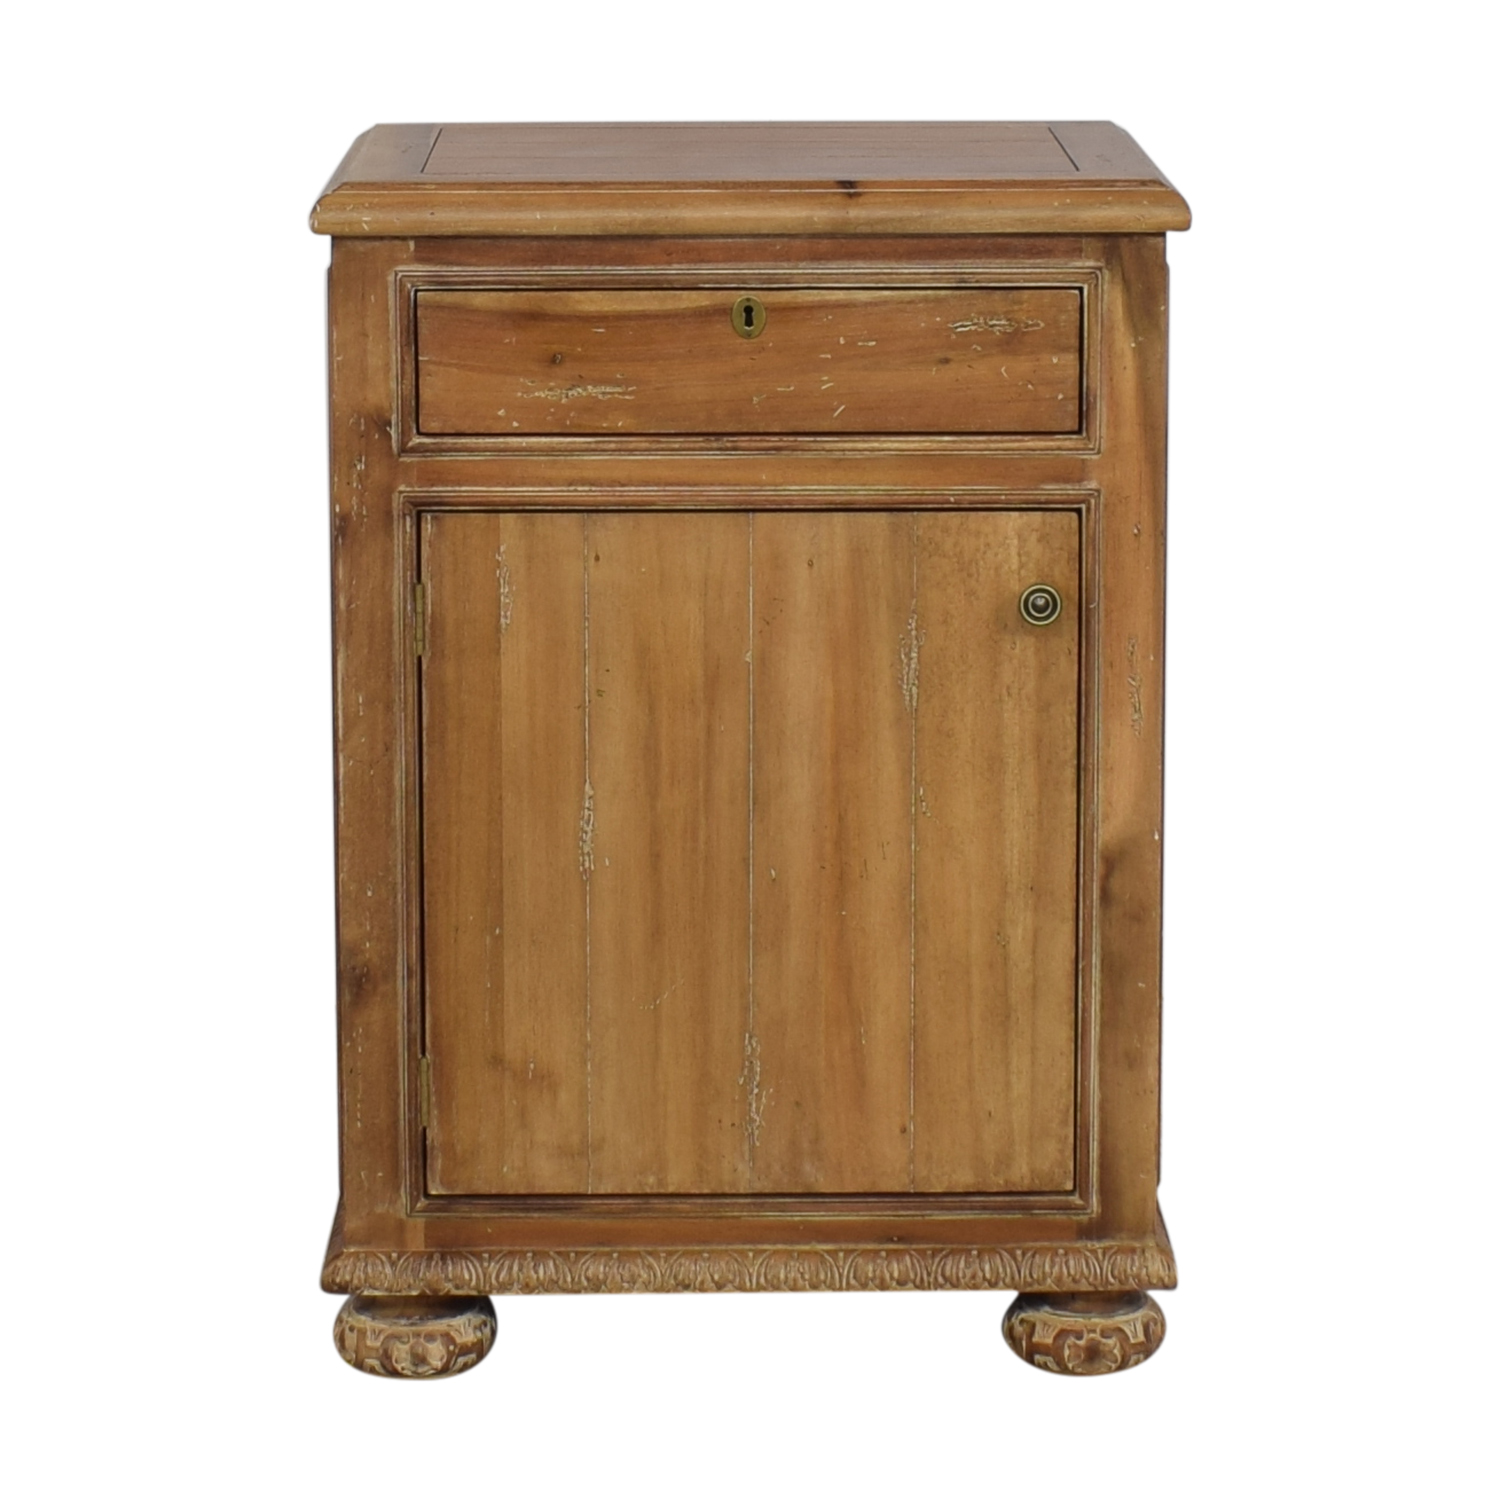 Restoration Hardware Restoration Hardware French Empire Short Cabinet ct